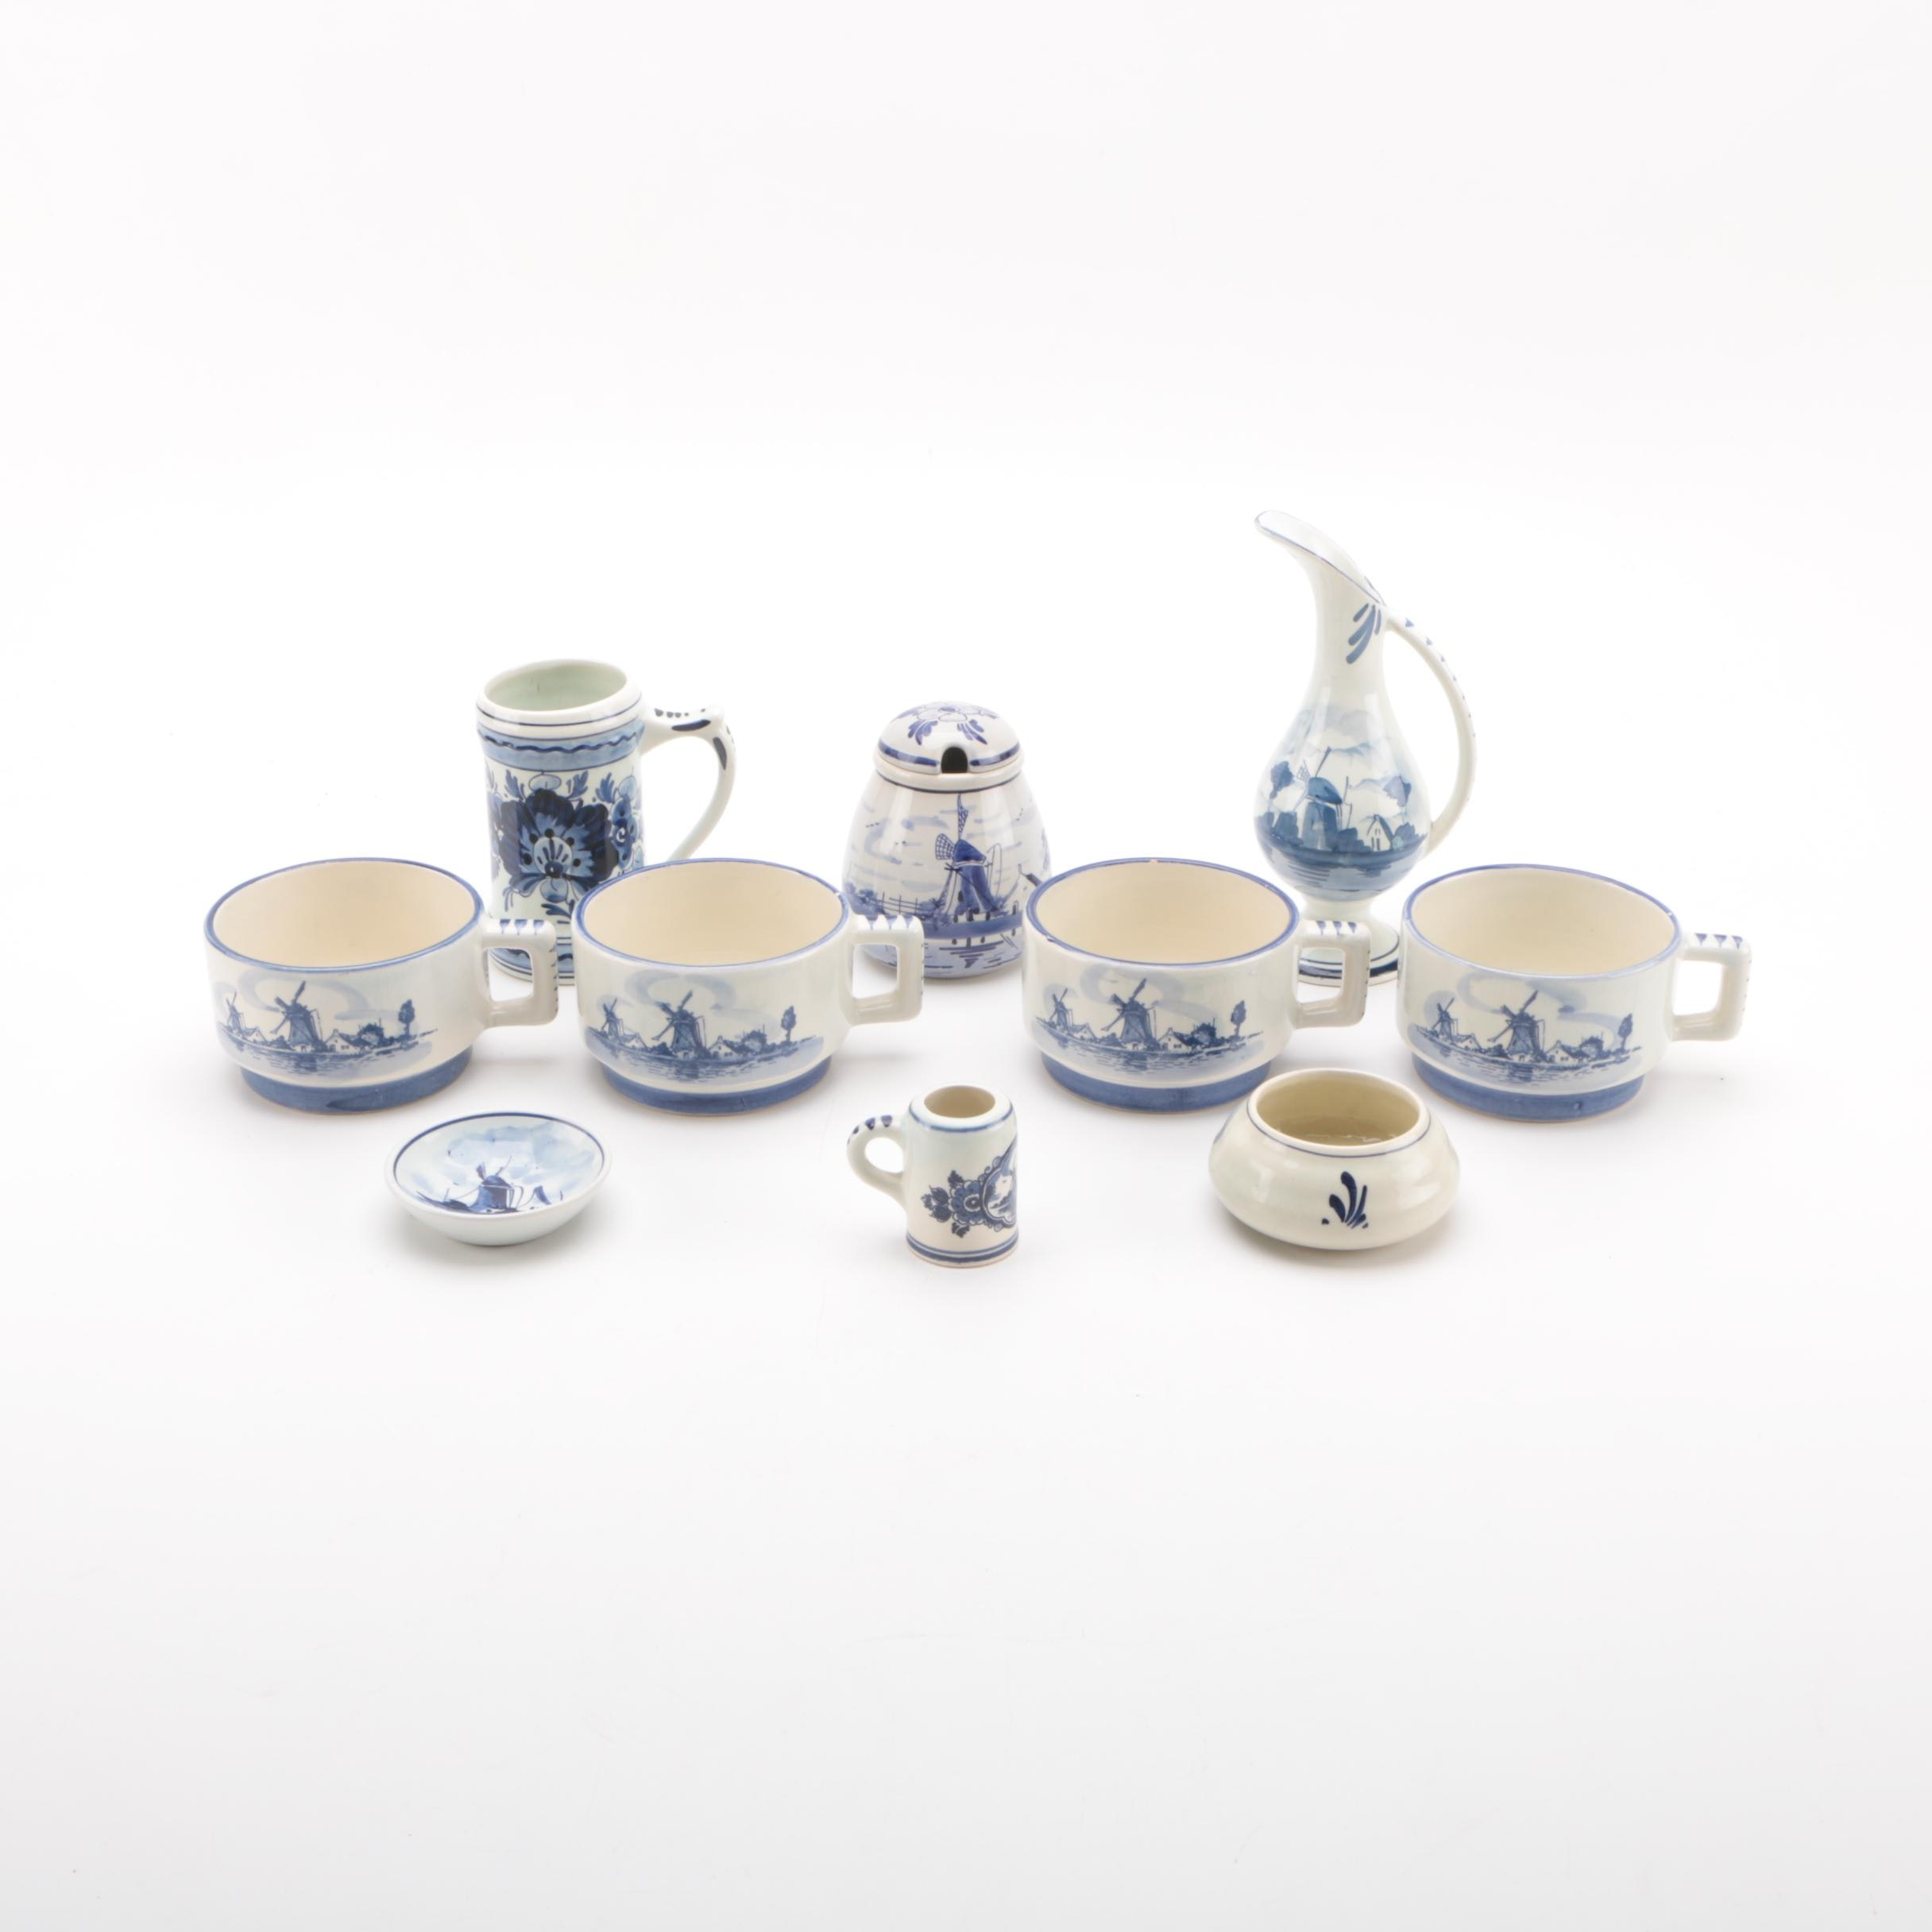 Delft Pottery Pieces and Tableware